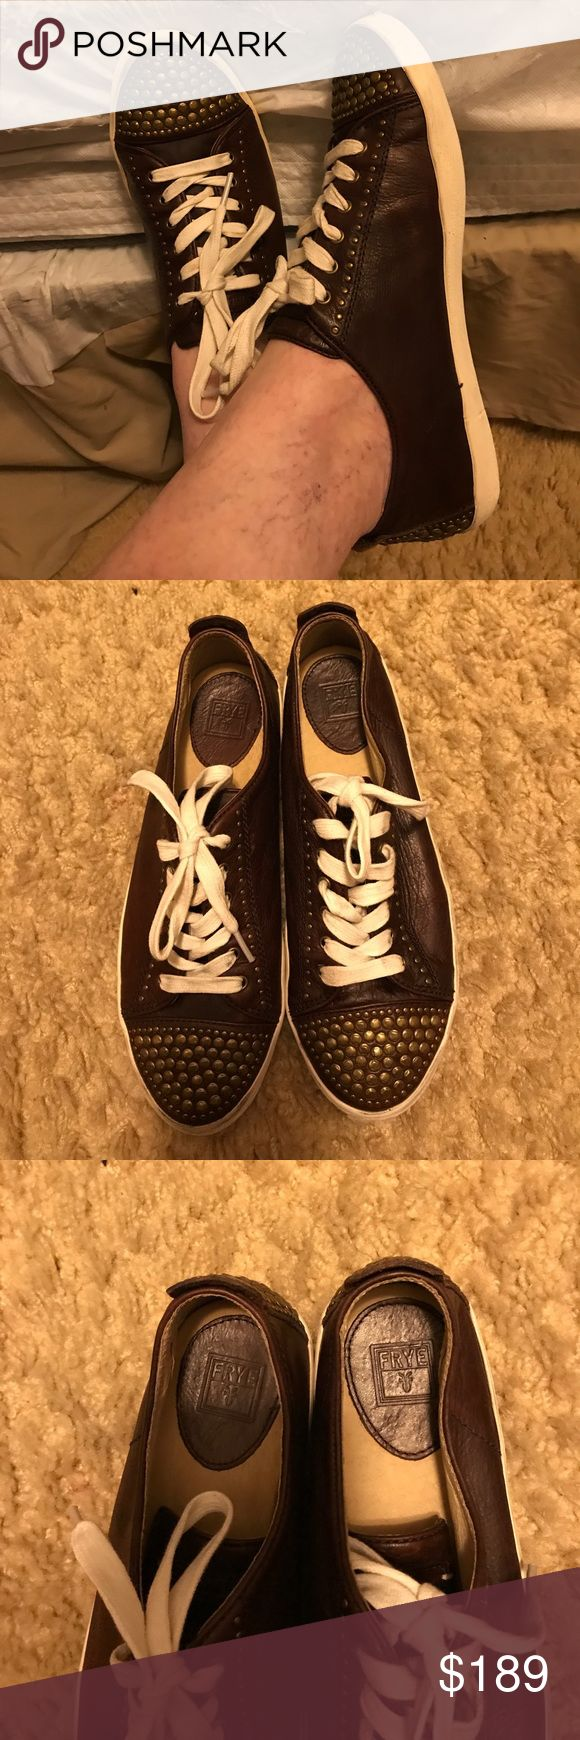 Frye Kira Stud Sneakers Tenny Shoe👟👟 Frye Kira Studded Sneakers Tenny Shoe👟👟 They are used but very very comfortable they L👀 K Amazing in great condition. I Love the feel leather in and out of the shoe it's amazing frye makes the best shoes and purses!!! Comes from a non-smoking home pet free. I ship Monday Wednesday Friday. Frye Shoes Sneakers